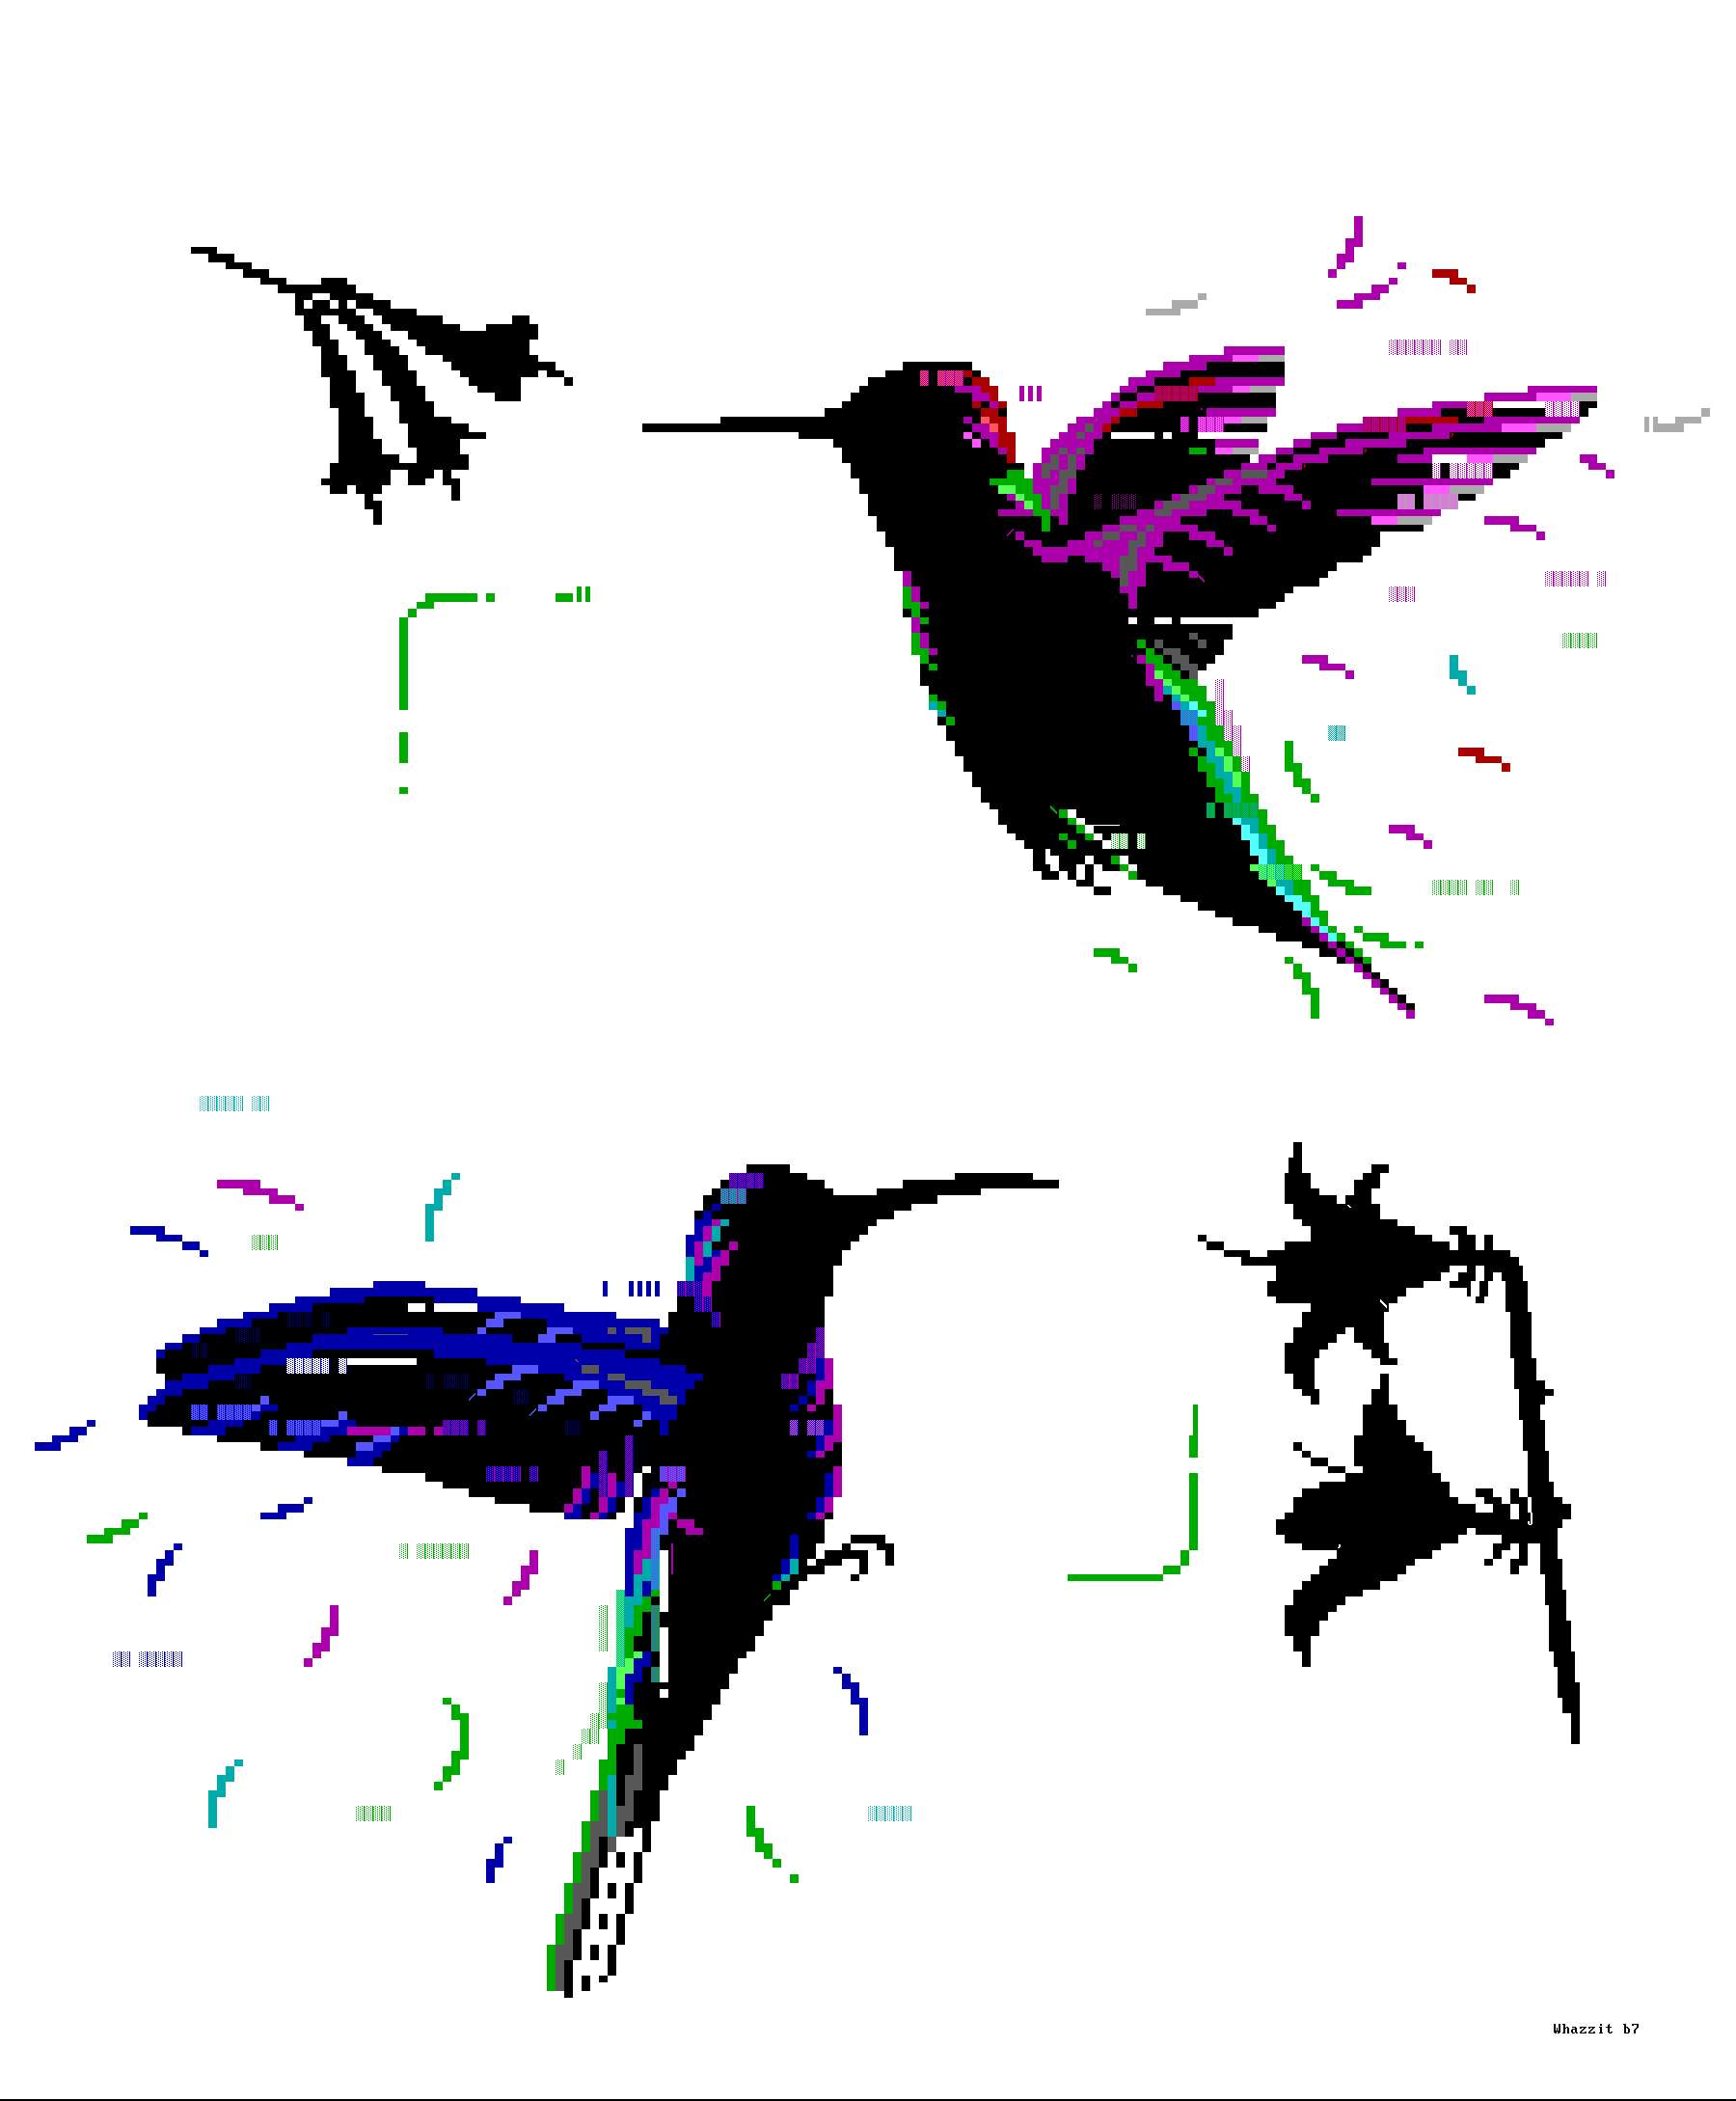 bird, birds, hummingbird, fly, flying, flower, blue, whazzit, purple, white, green